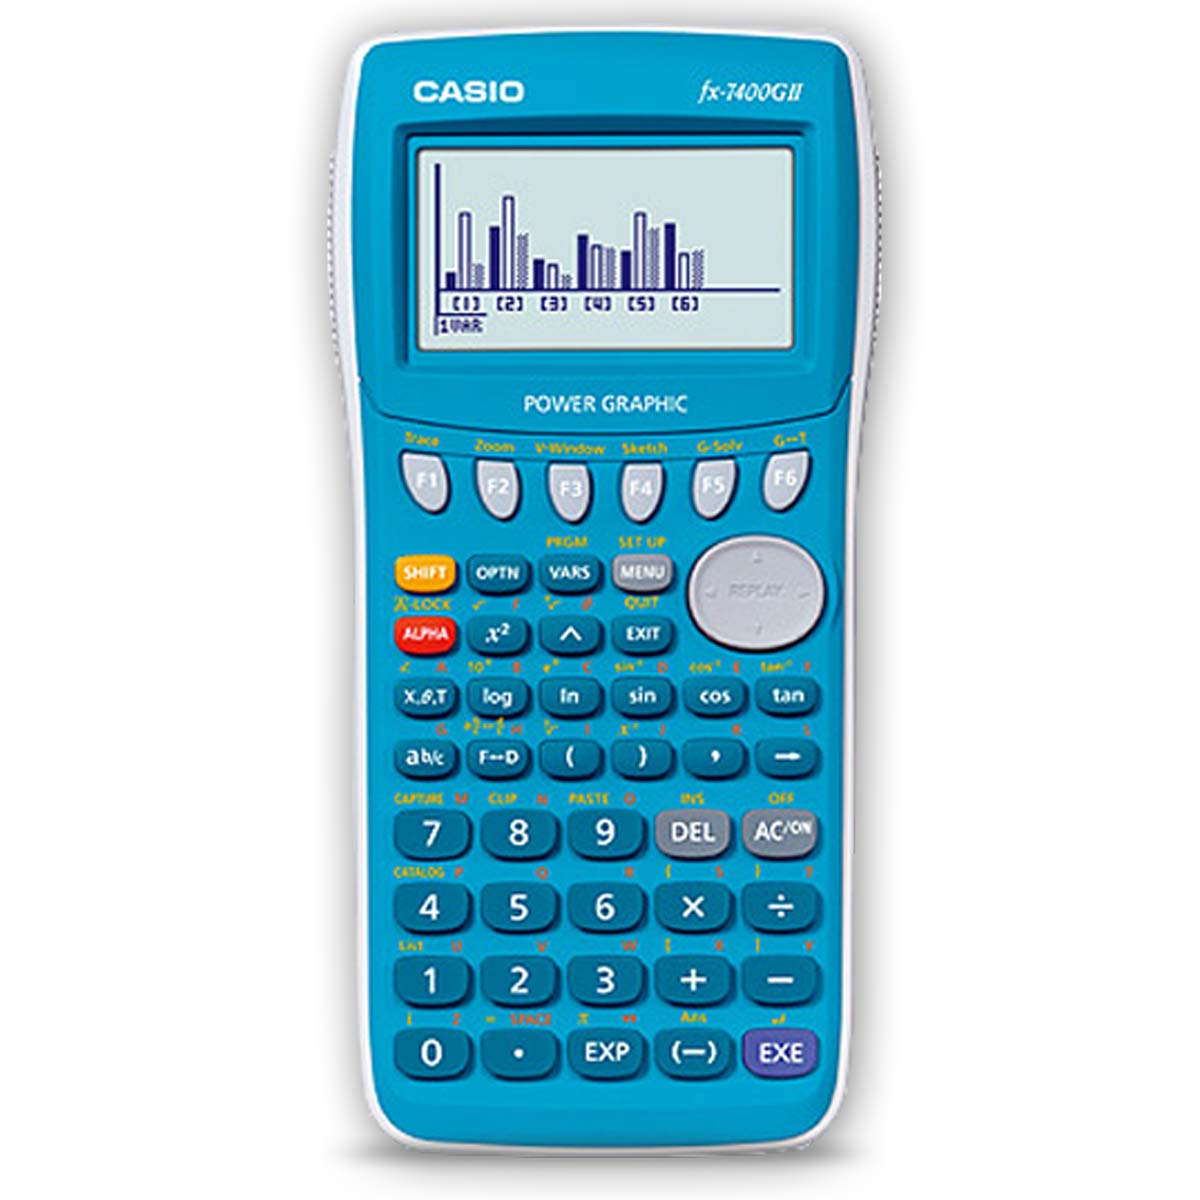 casio fx 7400gii power graphic calculator original